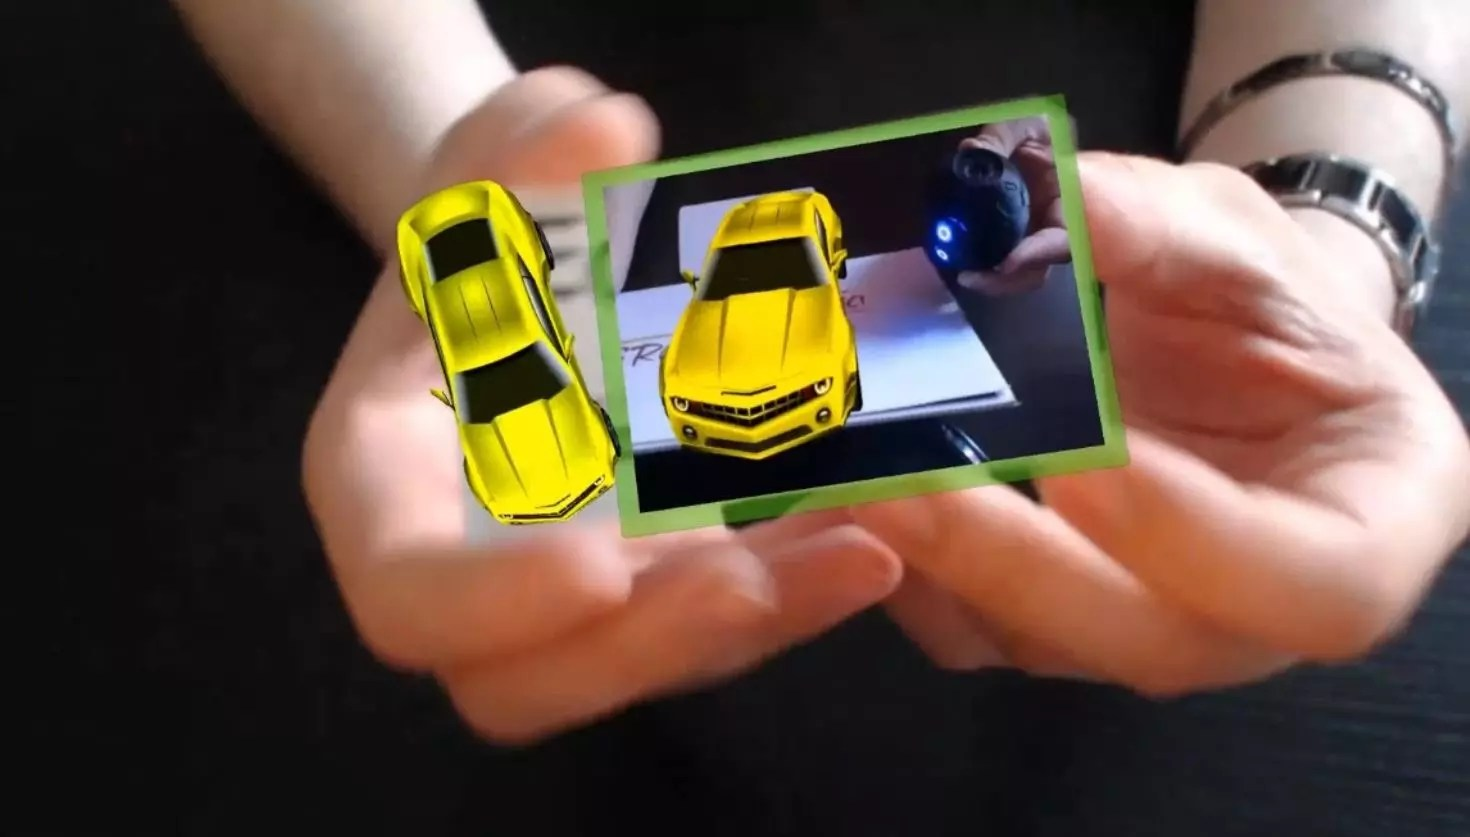 What are the Business opportunities with Augmented Reality?